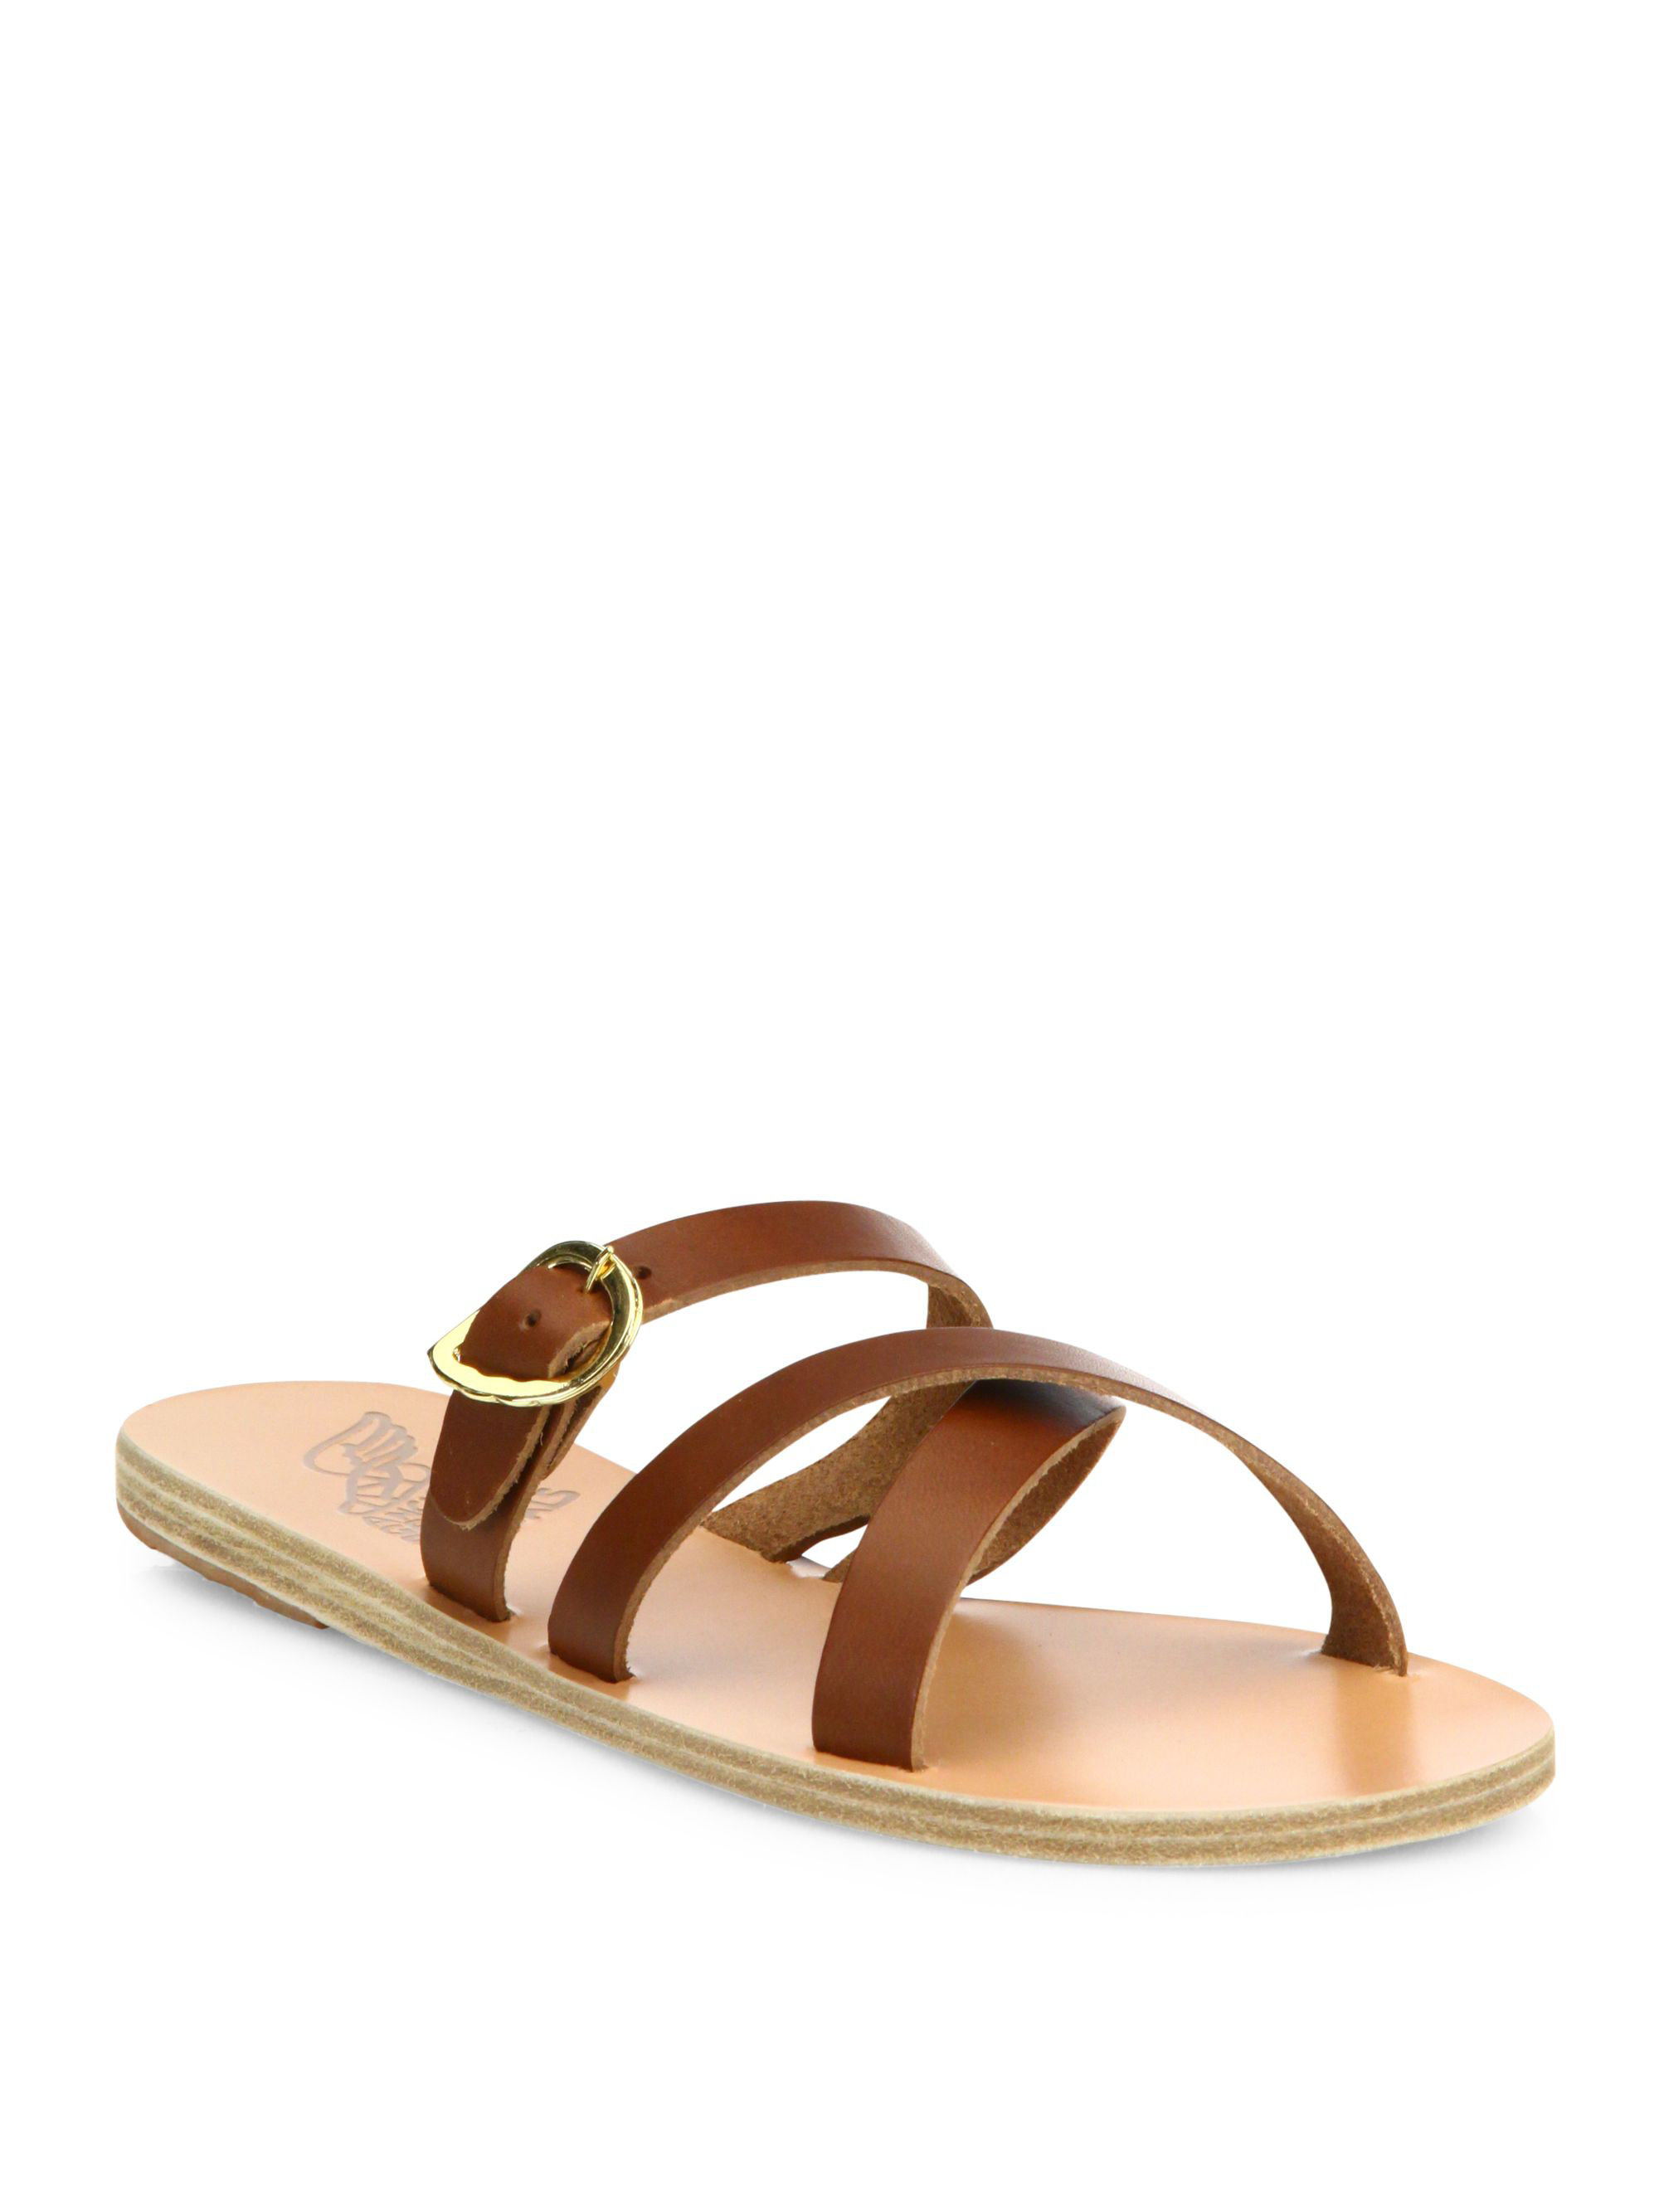 Ancient greek sandals Axia Leather Slides in Natural